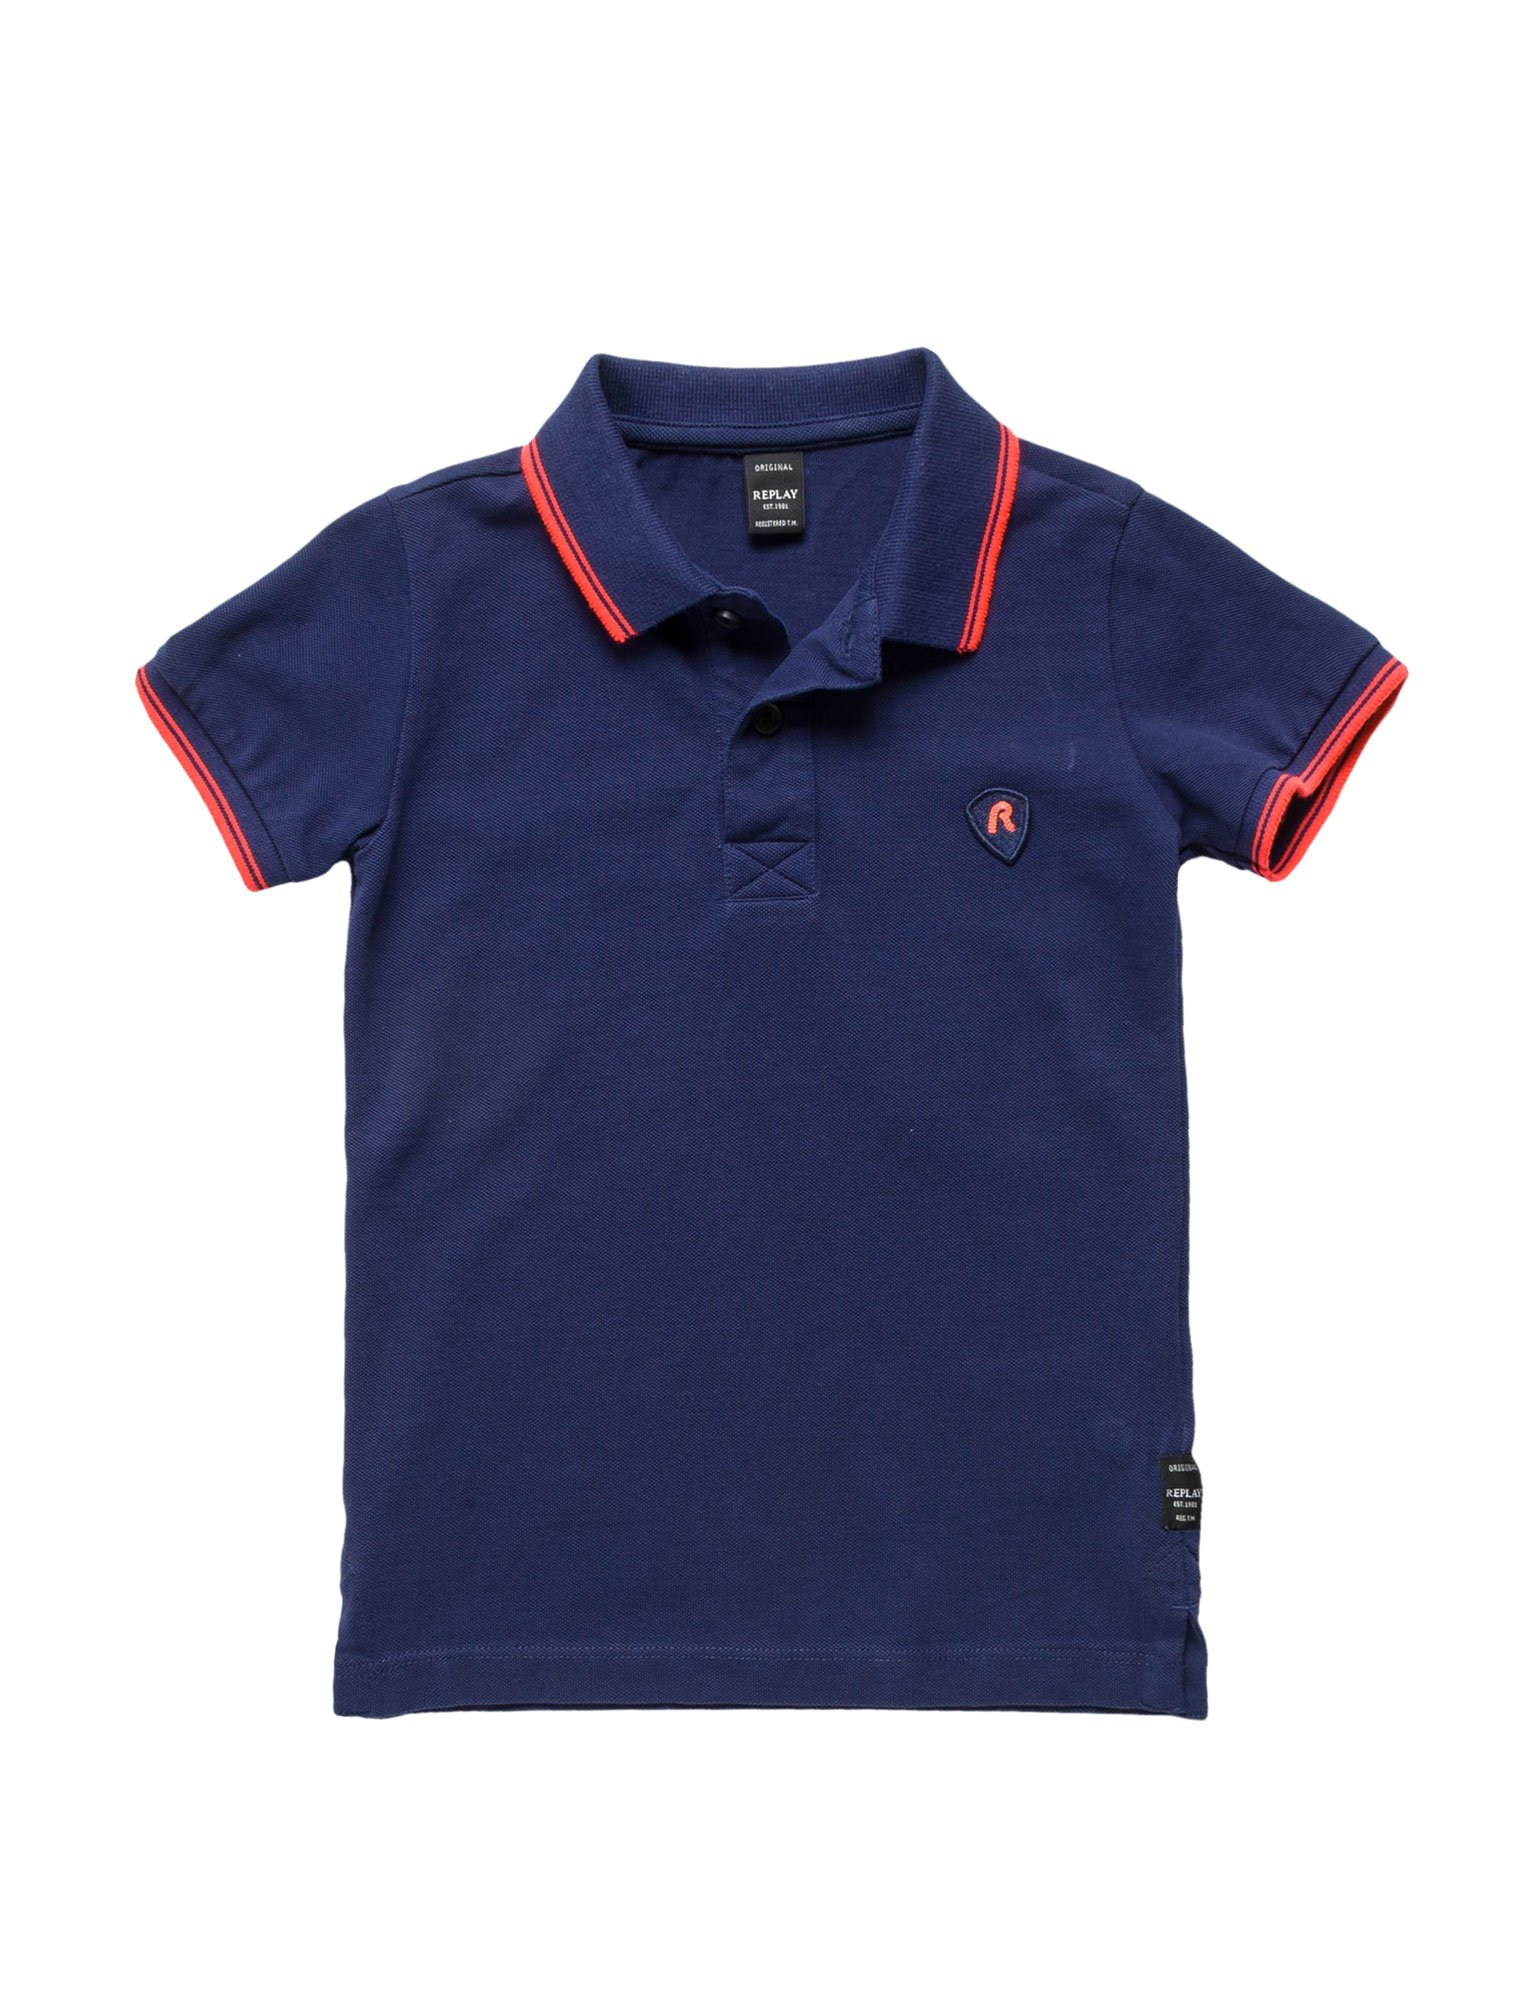 Replay Cotton Pique Boy's Polo in Blue in Size 10 Years Blue